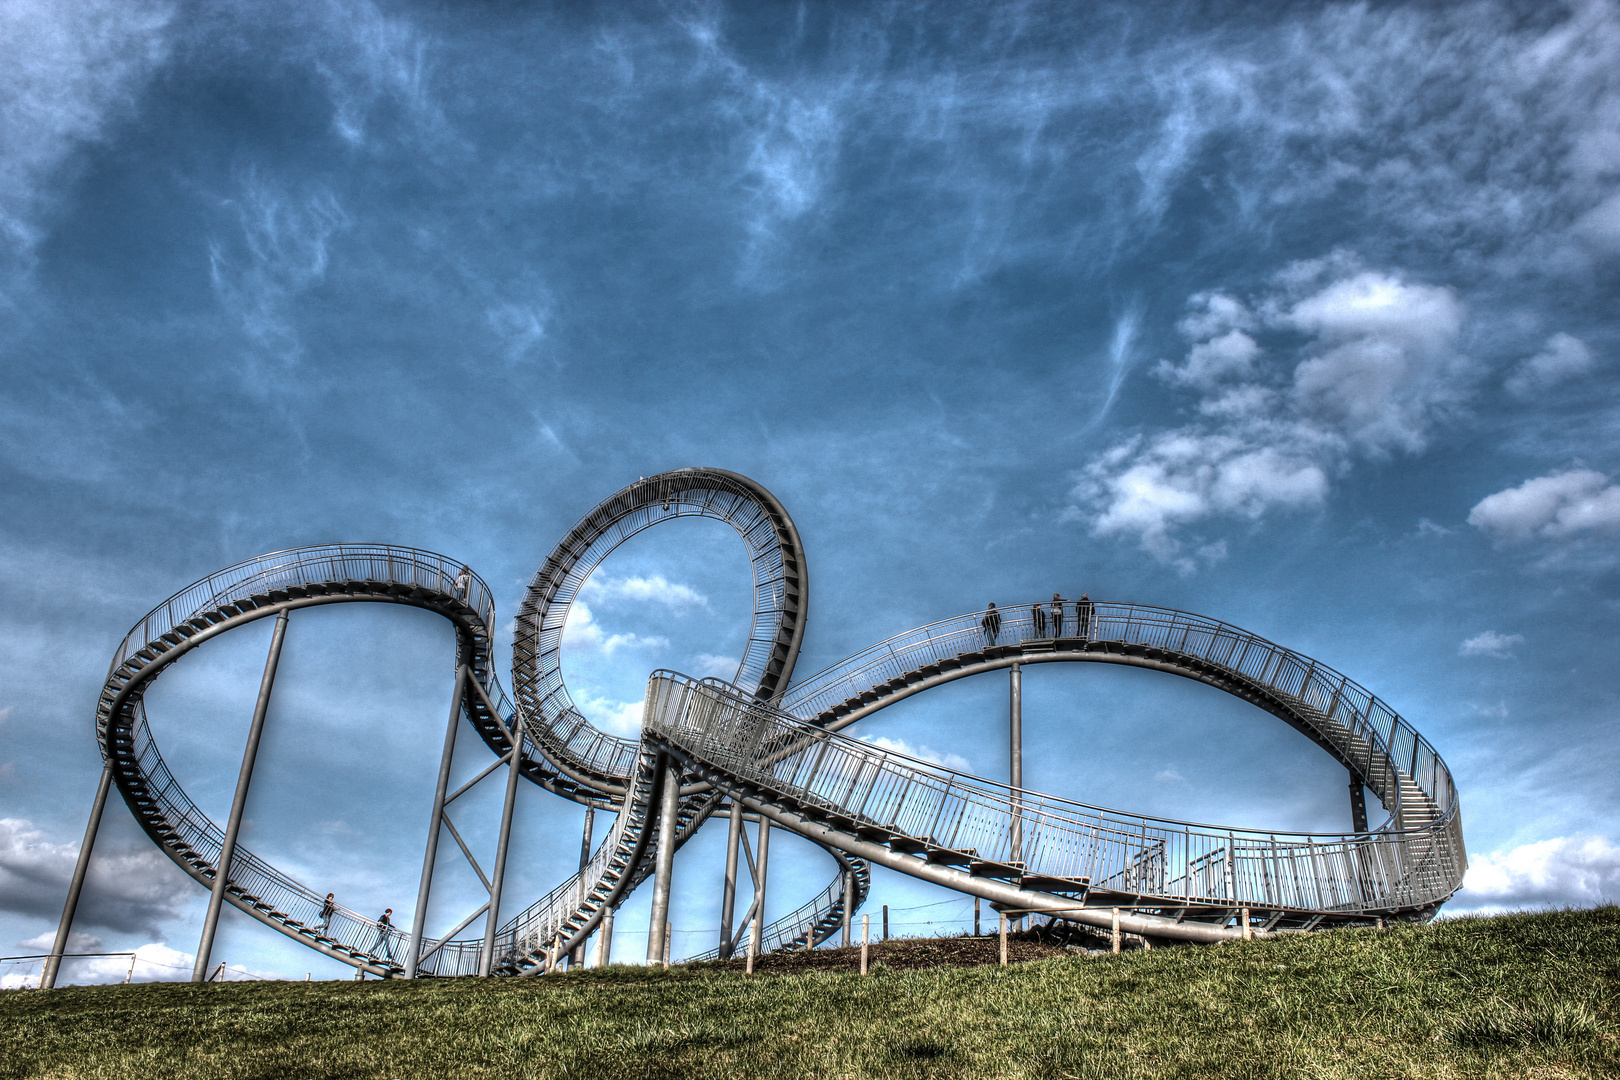 Tiger & Turtle - Magic Mountain Landmarke Angerpark in Duisburg